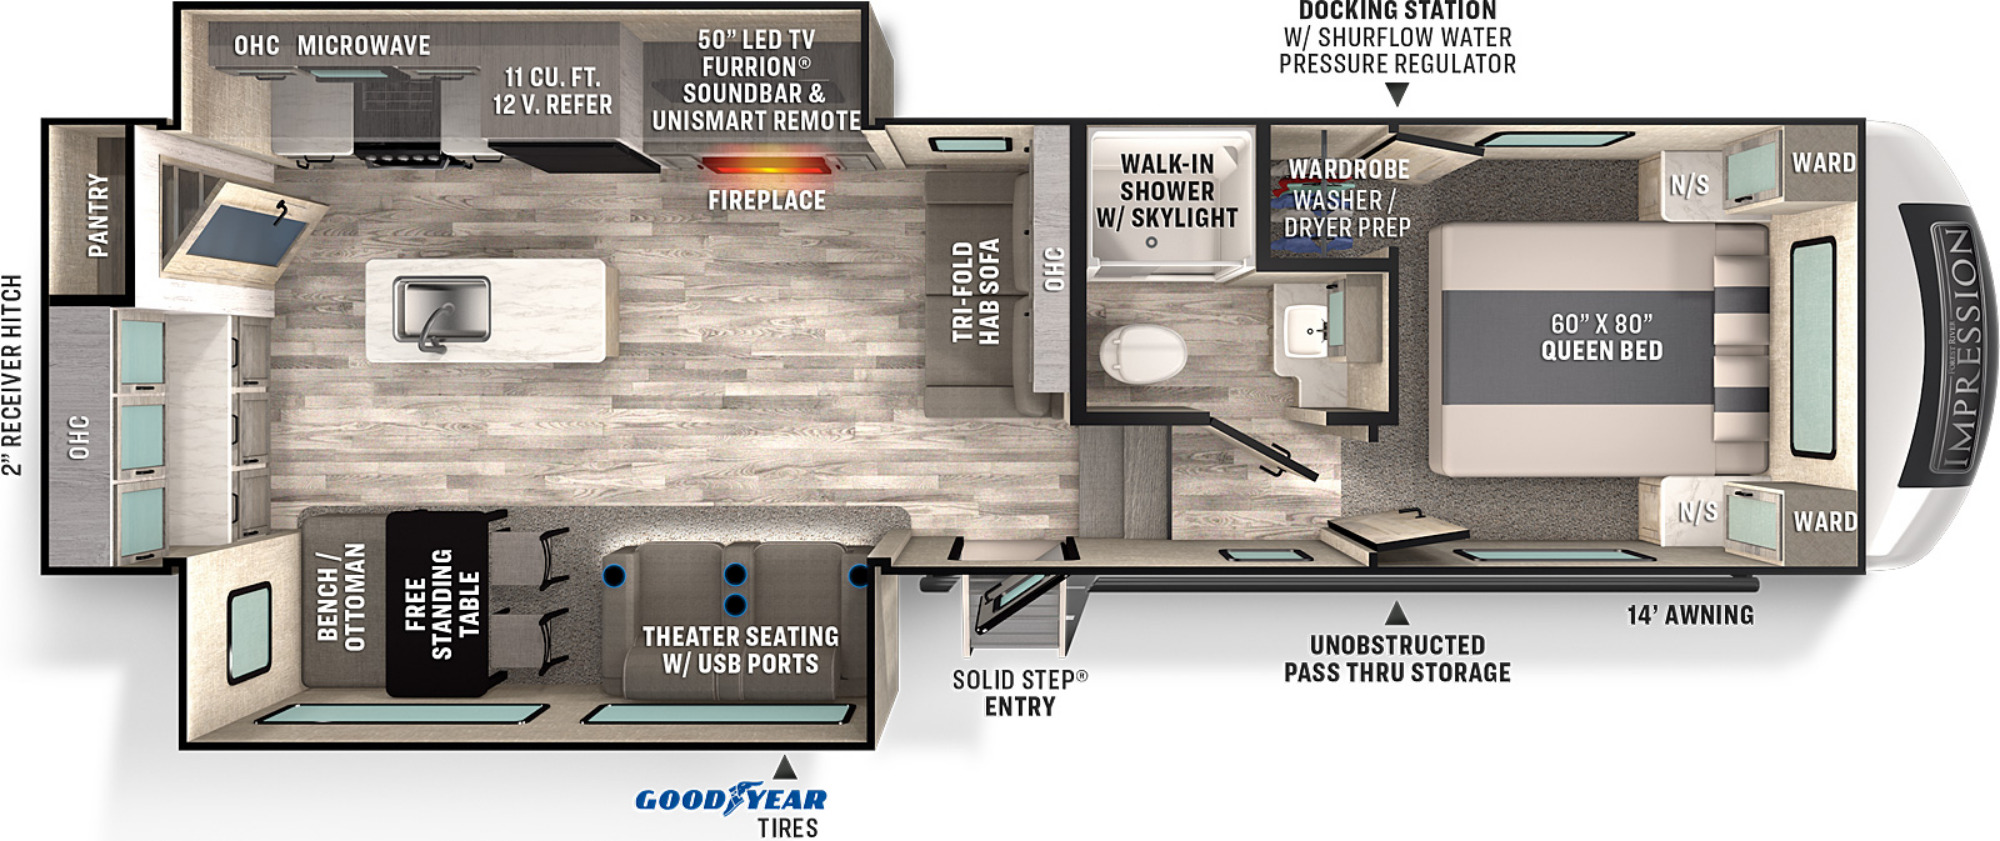 View Floor Plan for 2021 FOREST RIVER IMPRESSION 270RK